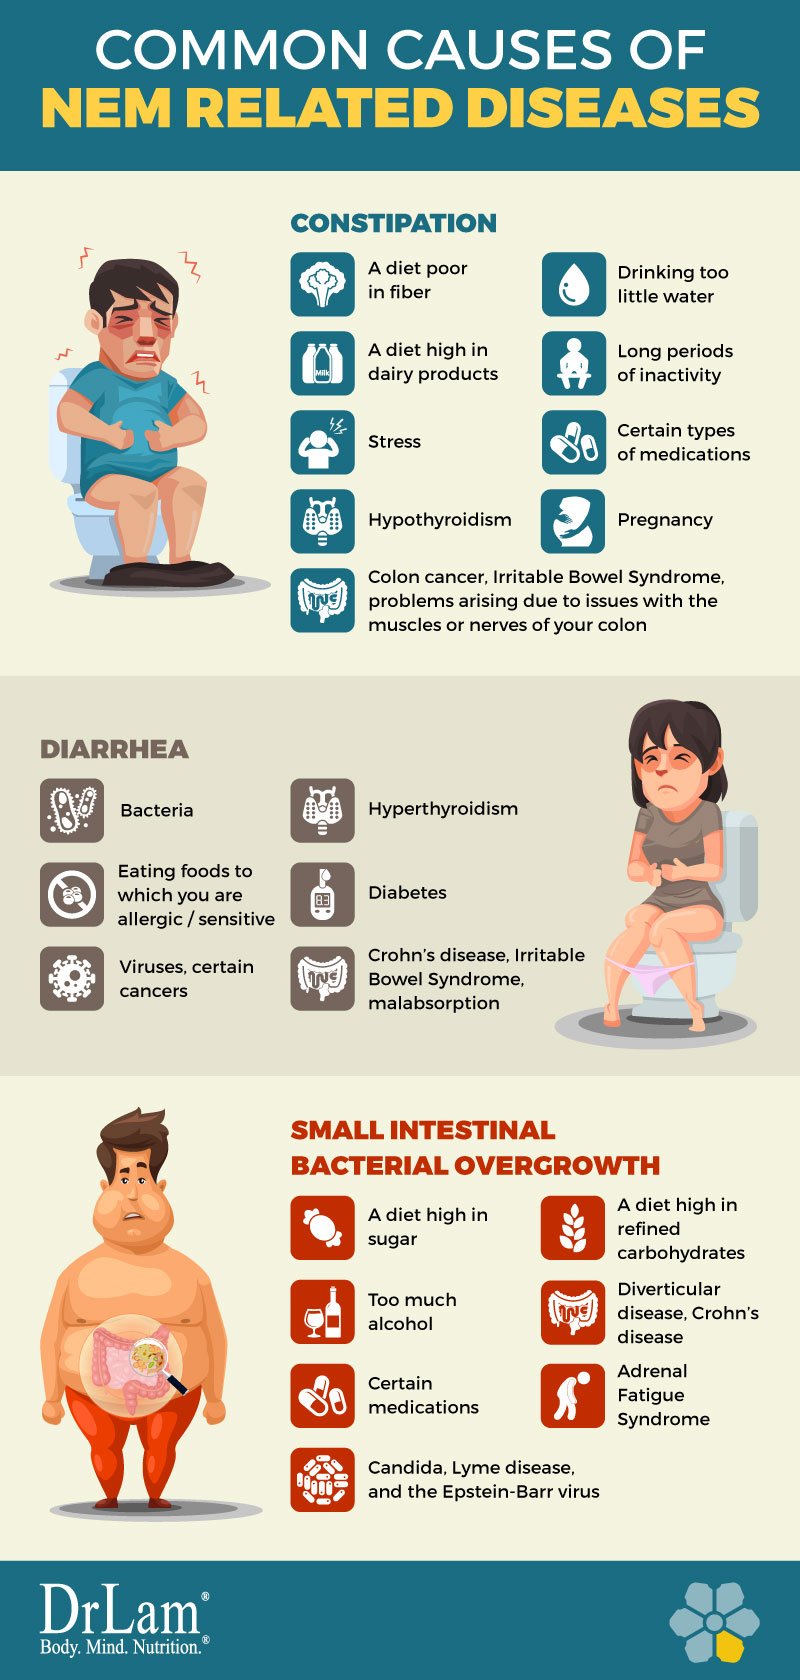 Check out this easy to understand infographic about the common causes of NEM related diseases